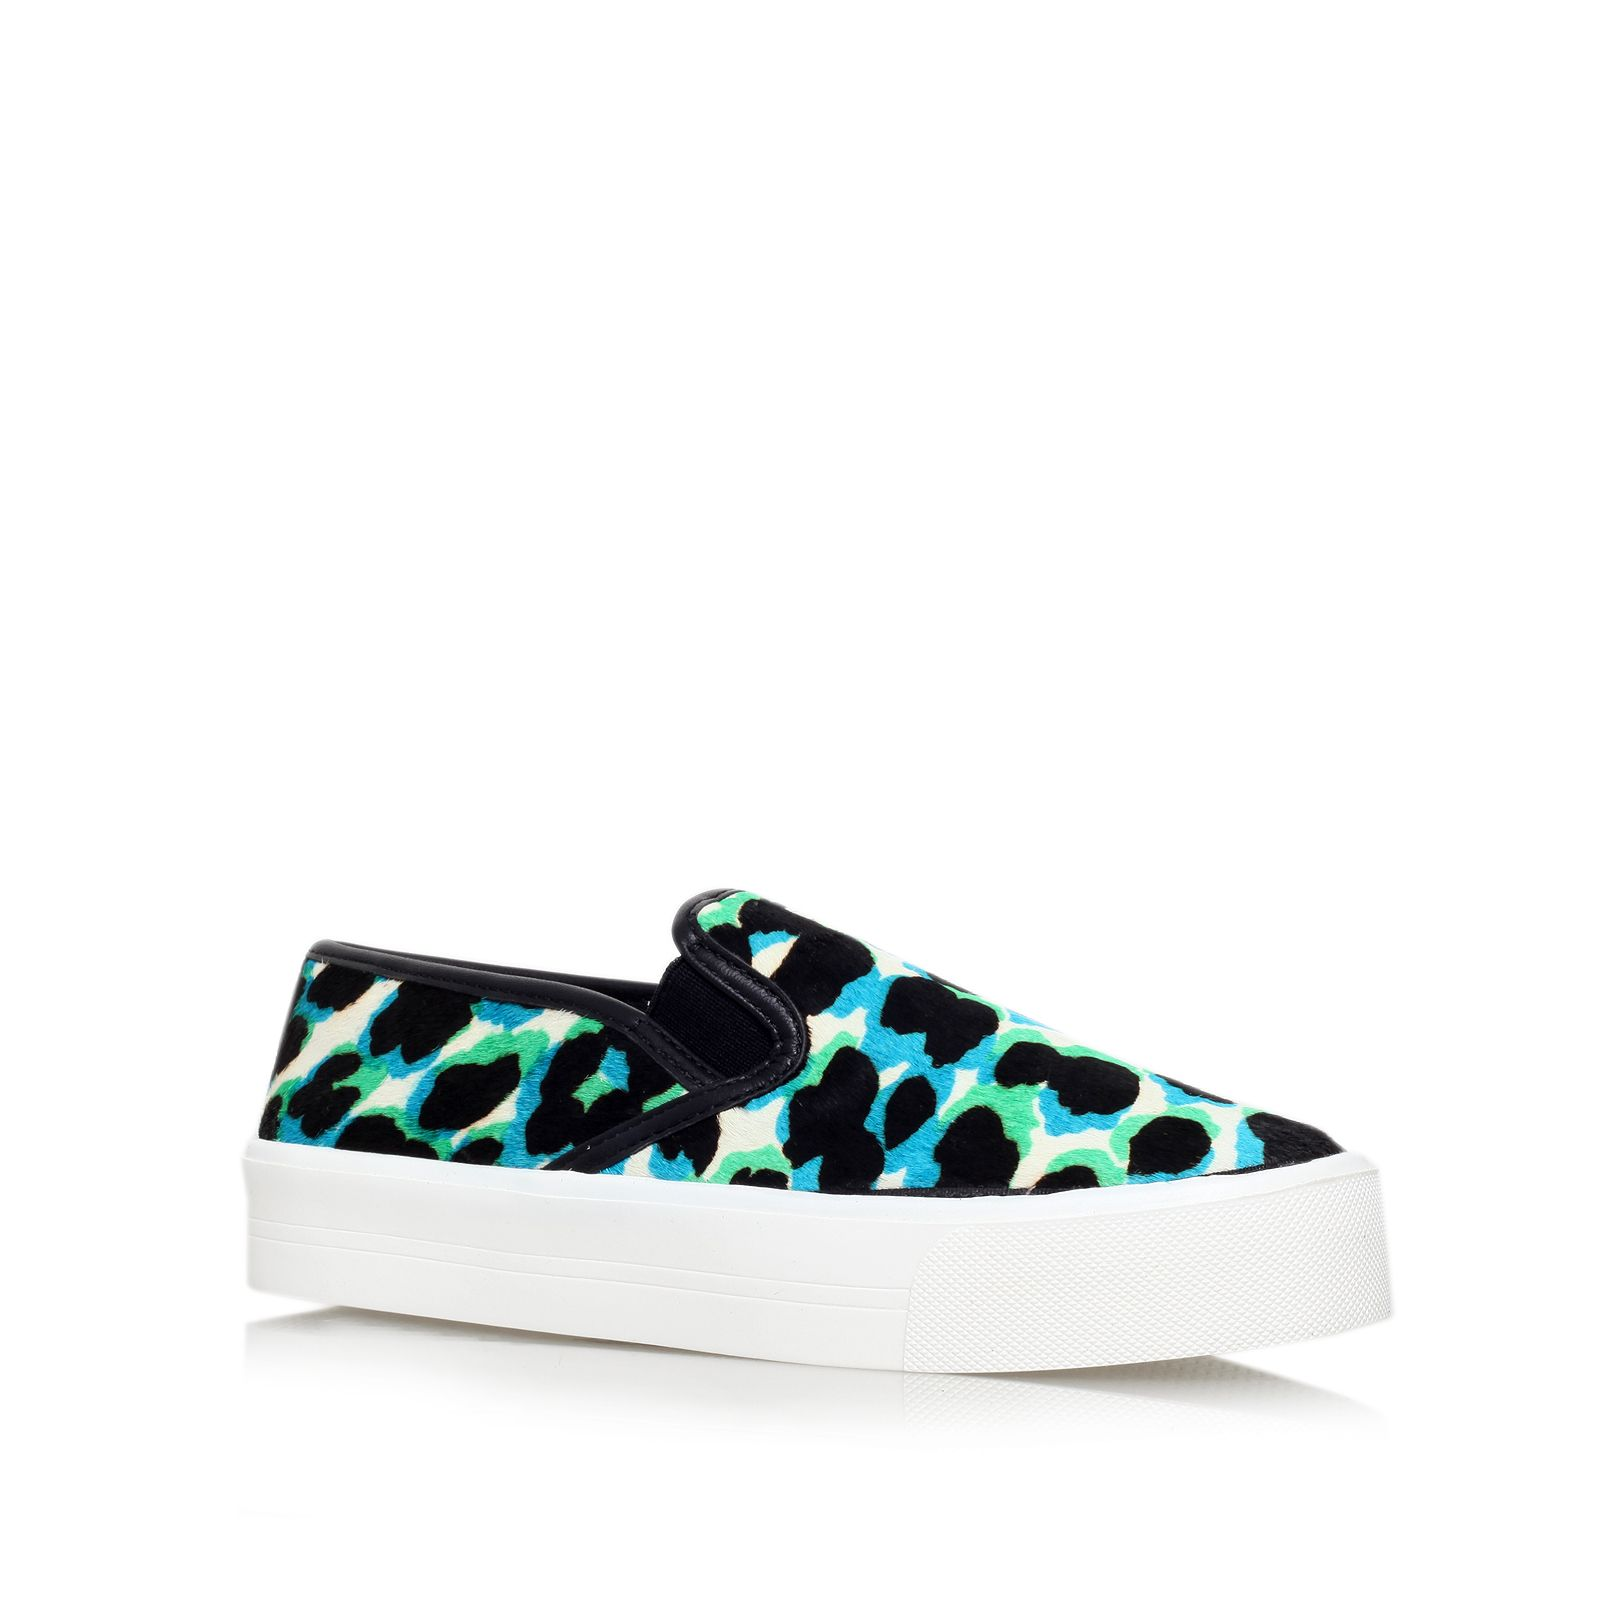 Carvela Lux combination flat slip on trainers